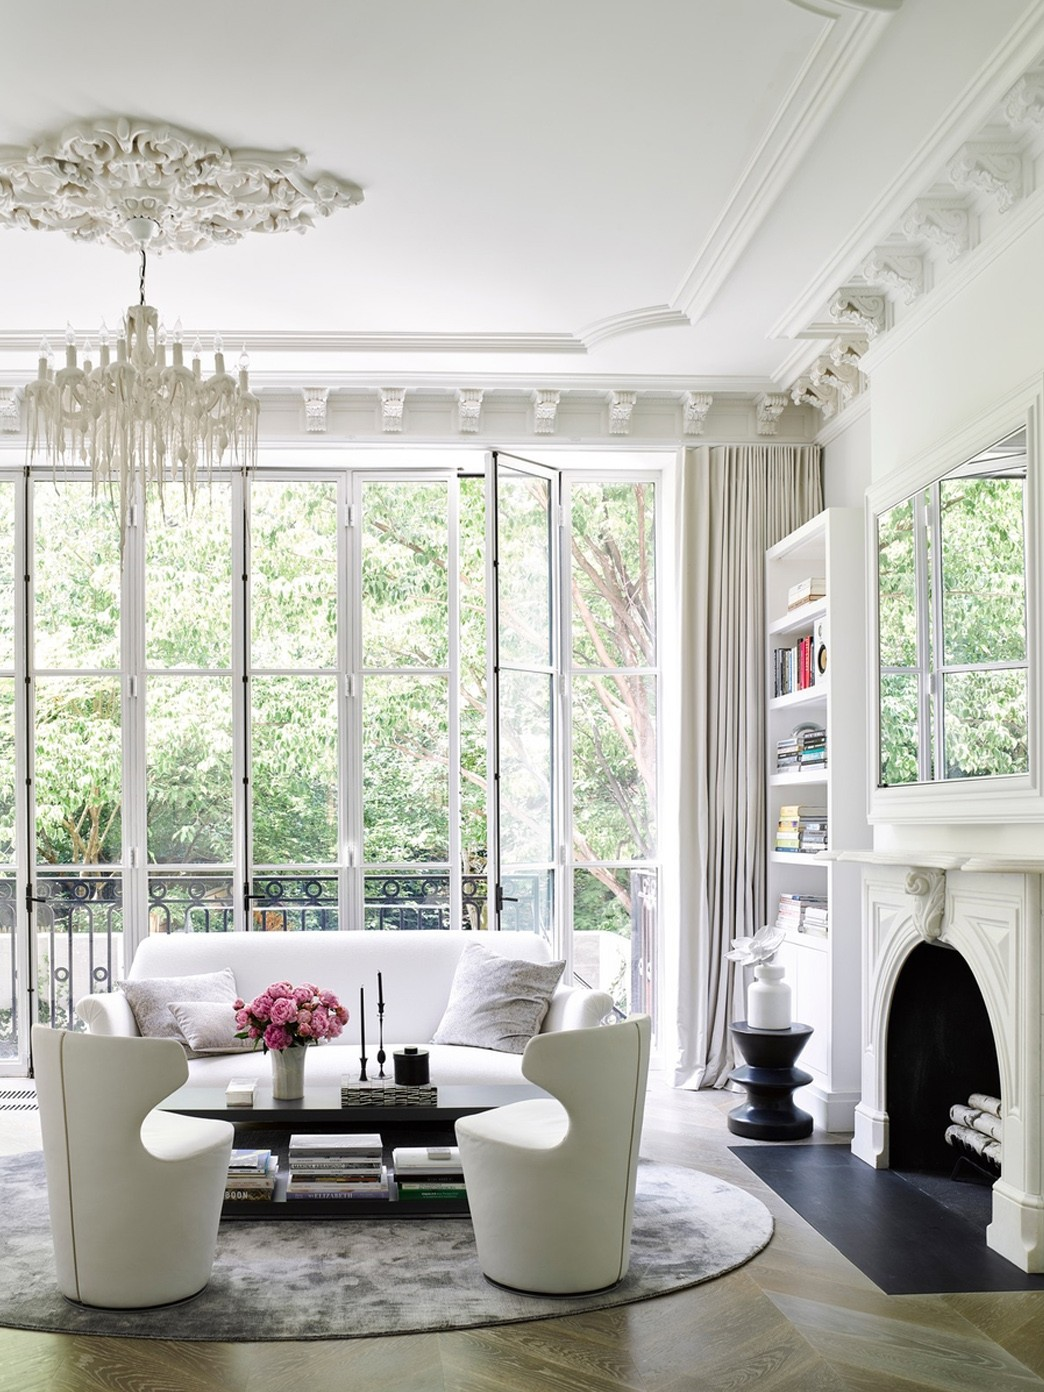 Design Studio New York a contemporary take on a classic new york house by studio